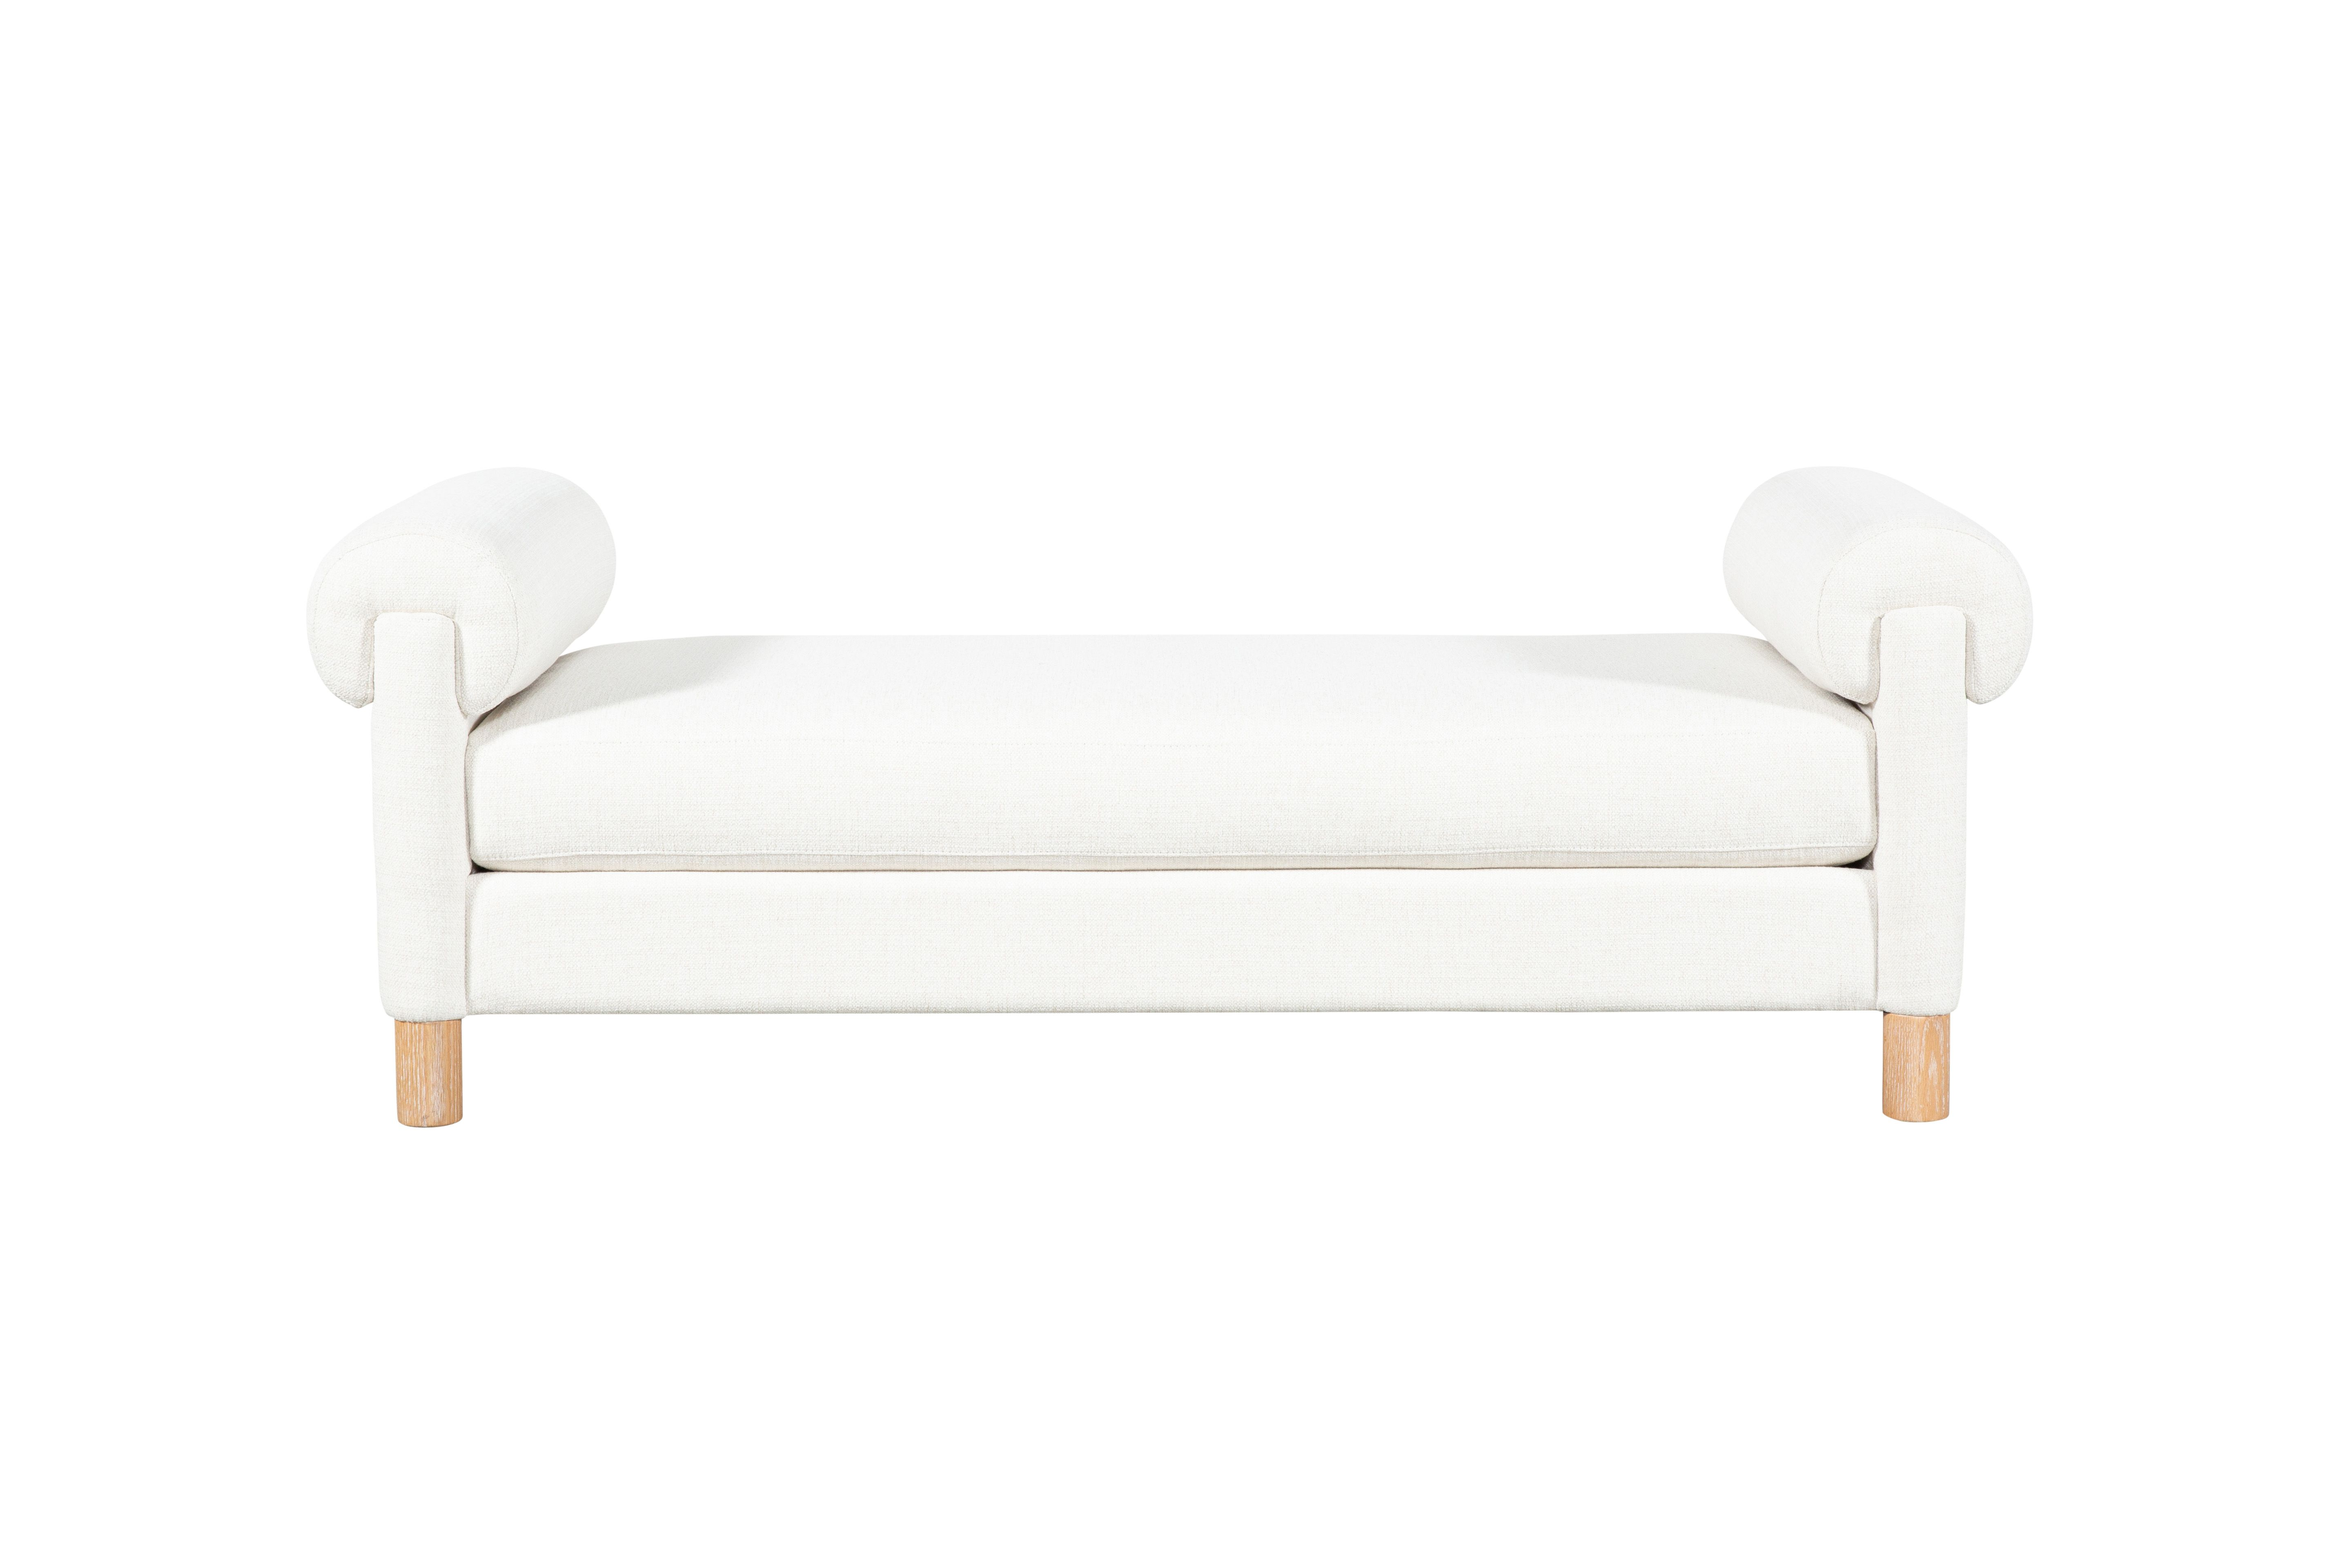 Nate Berkus and Jeremiah Brent for Living Spaces Gwen Daybed